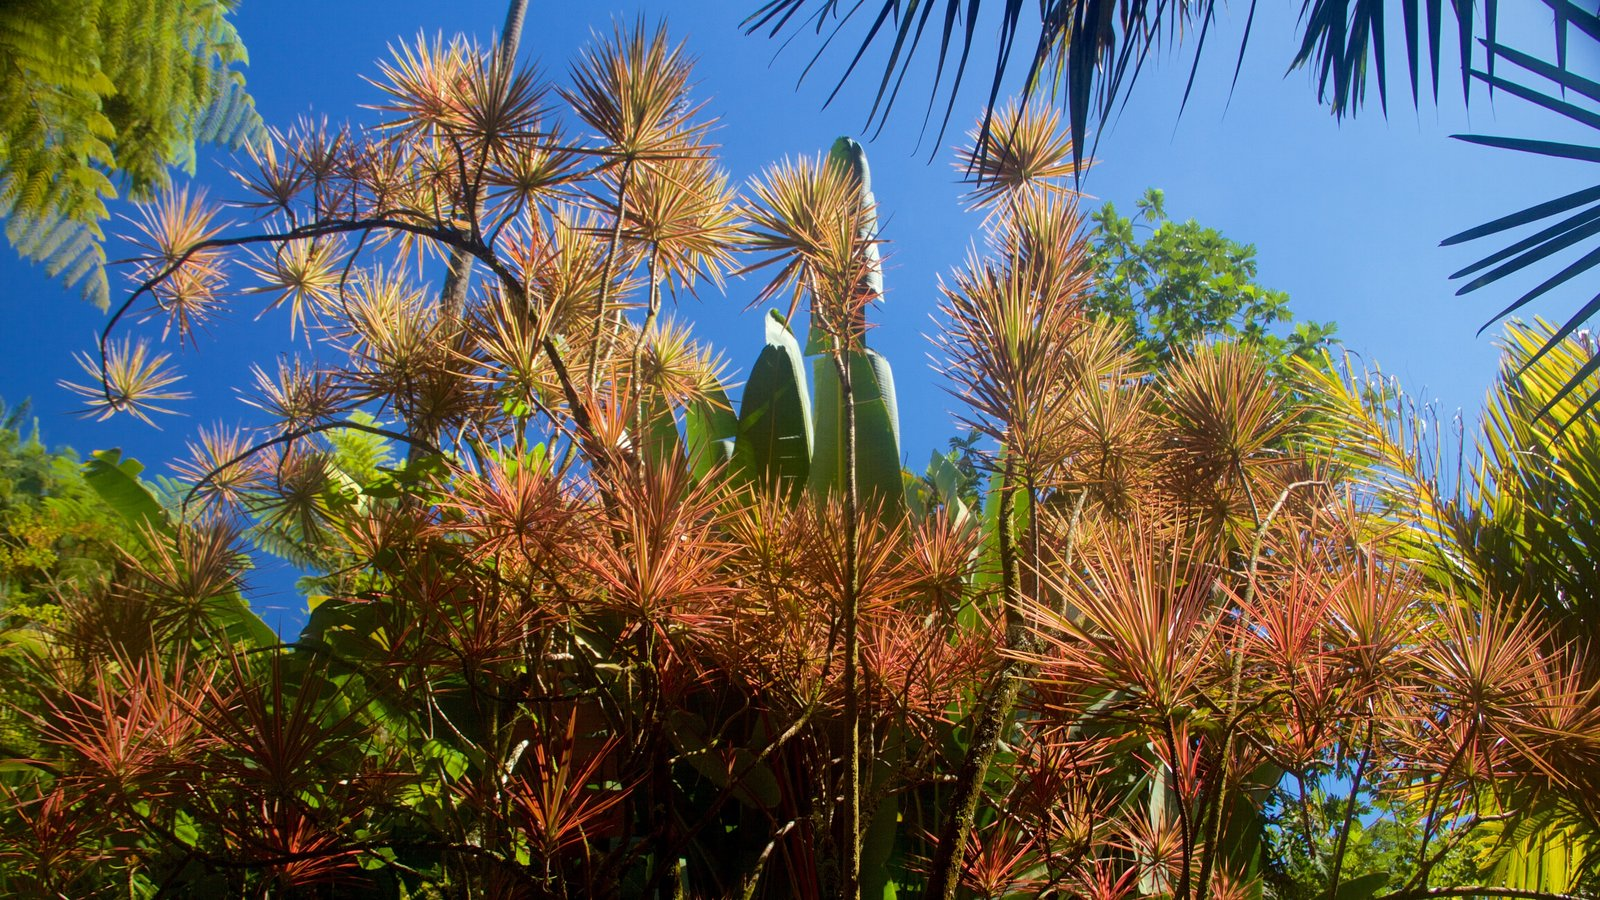 Flowers Pictures: View Images of Hawaii Tropical Botanical Garden